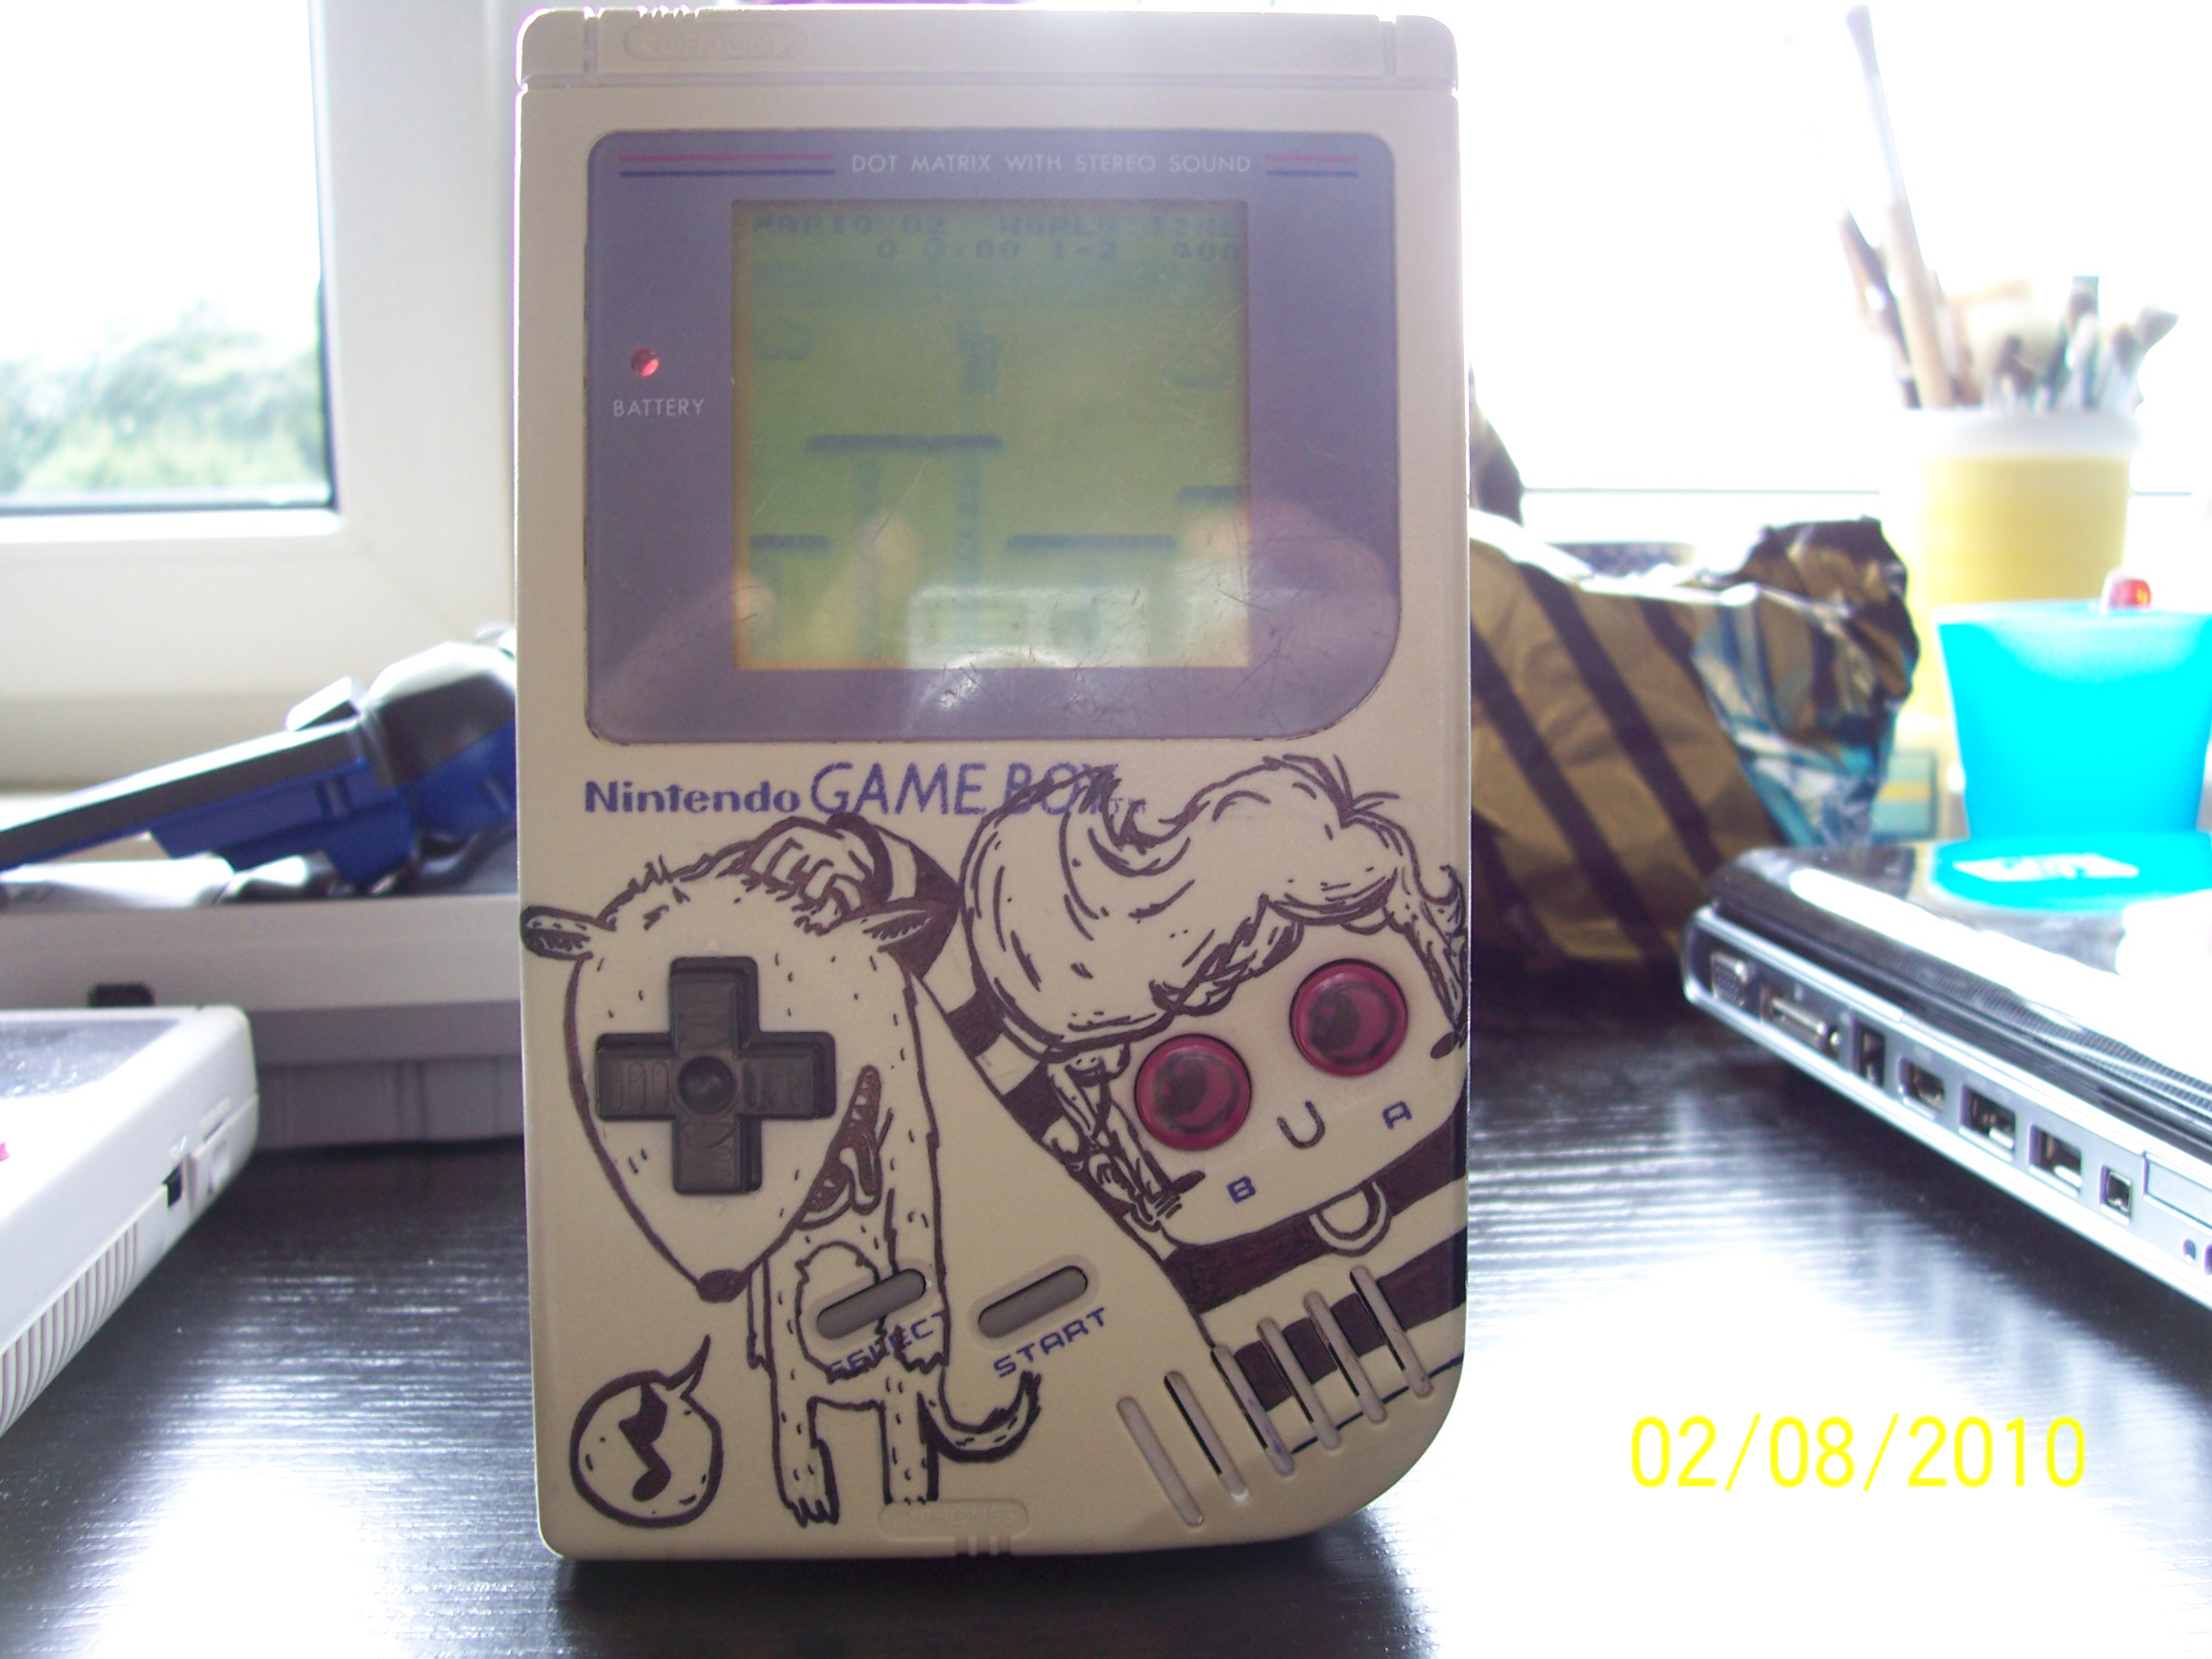 Custom Painted DMG Gameboy #1 by HolyKonni on Newgrounds